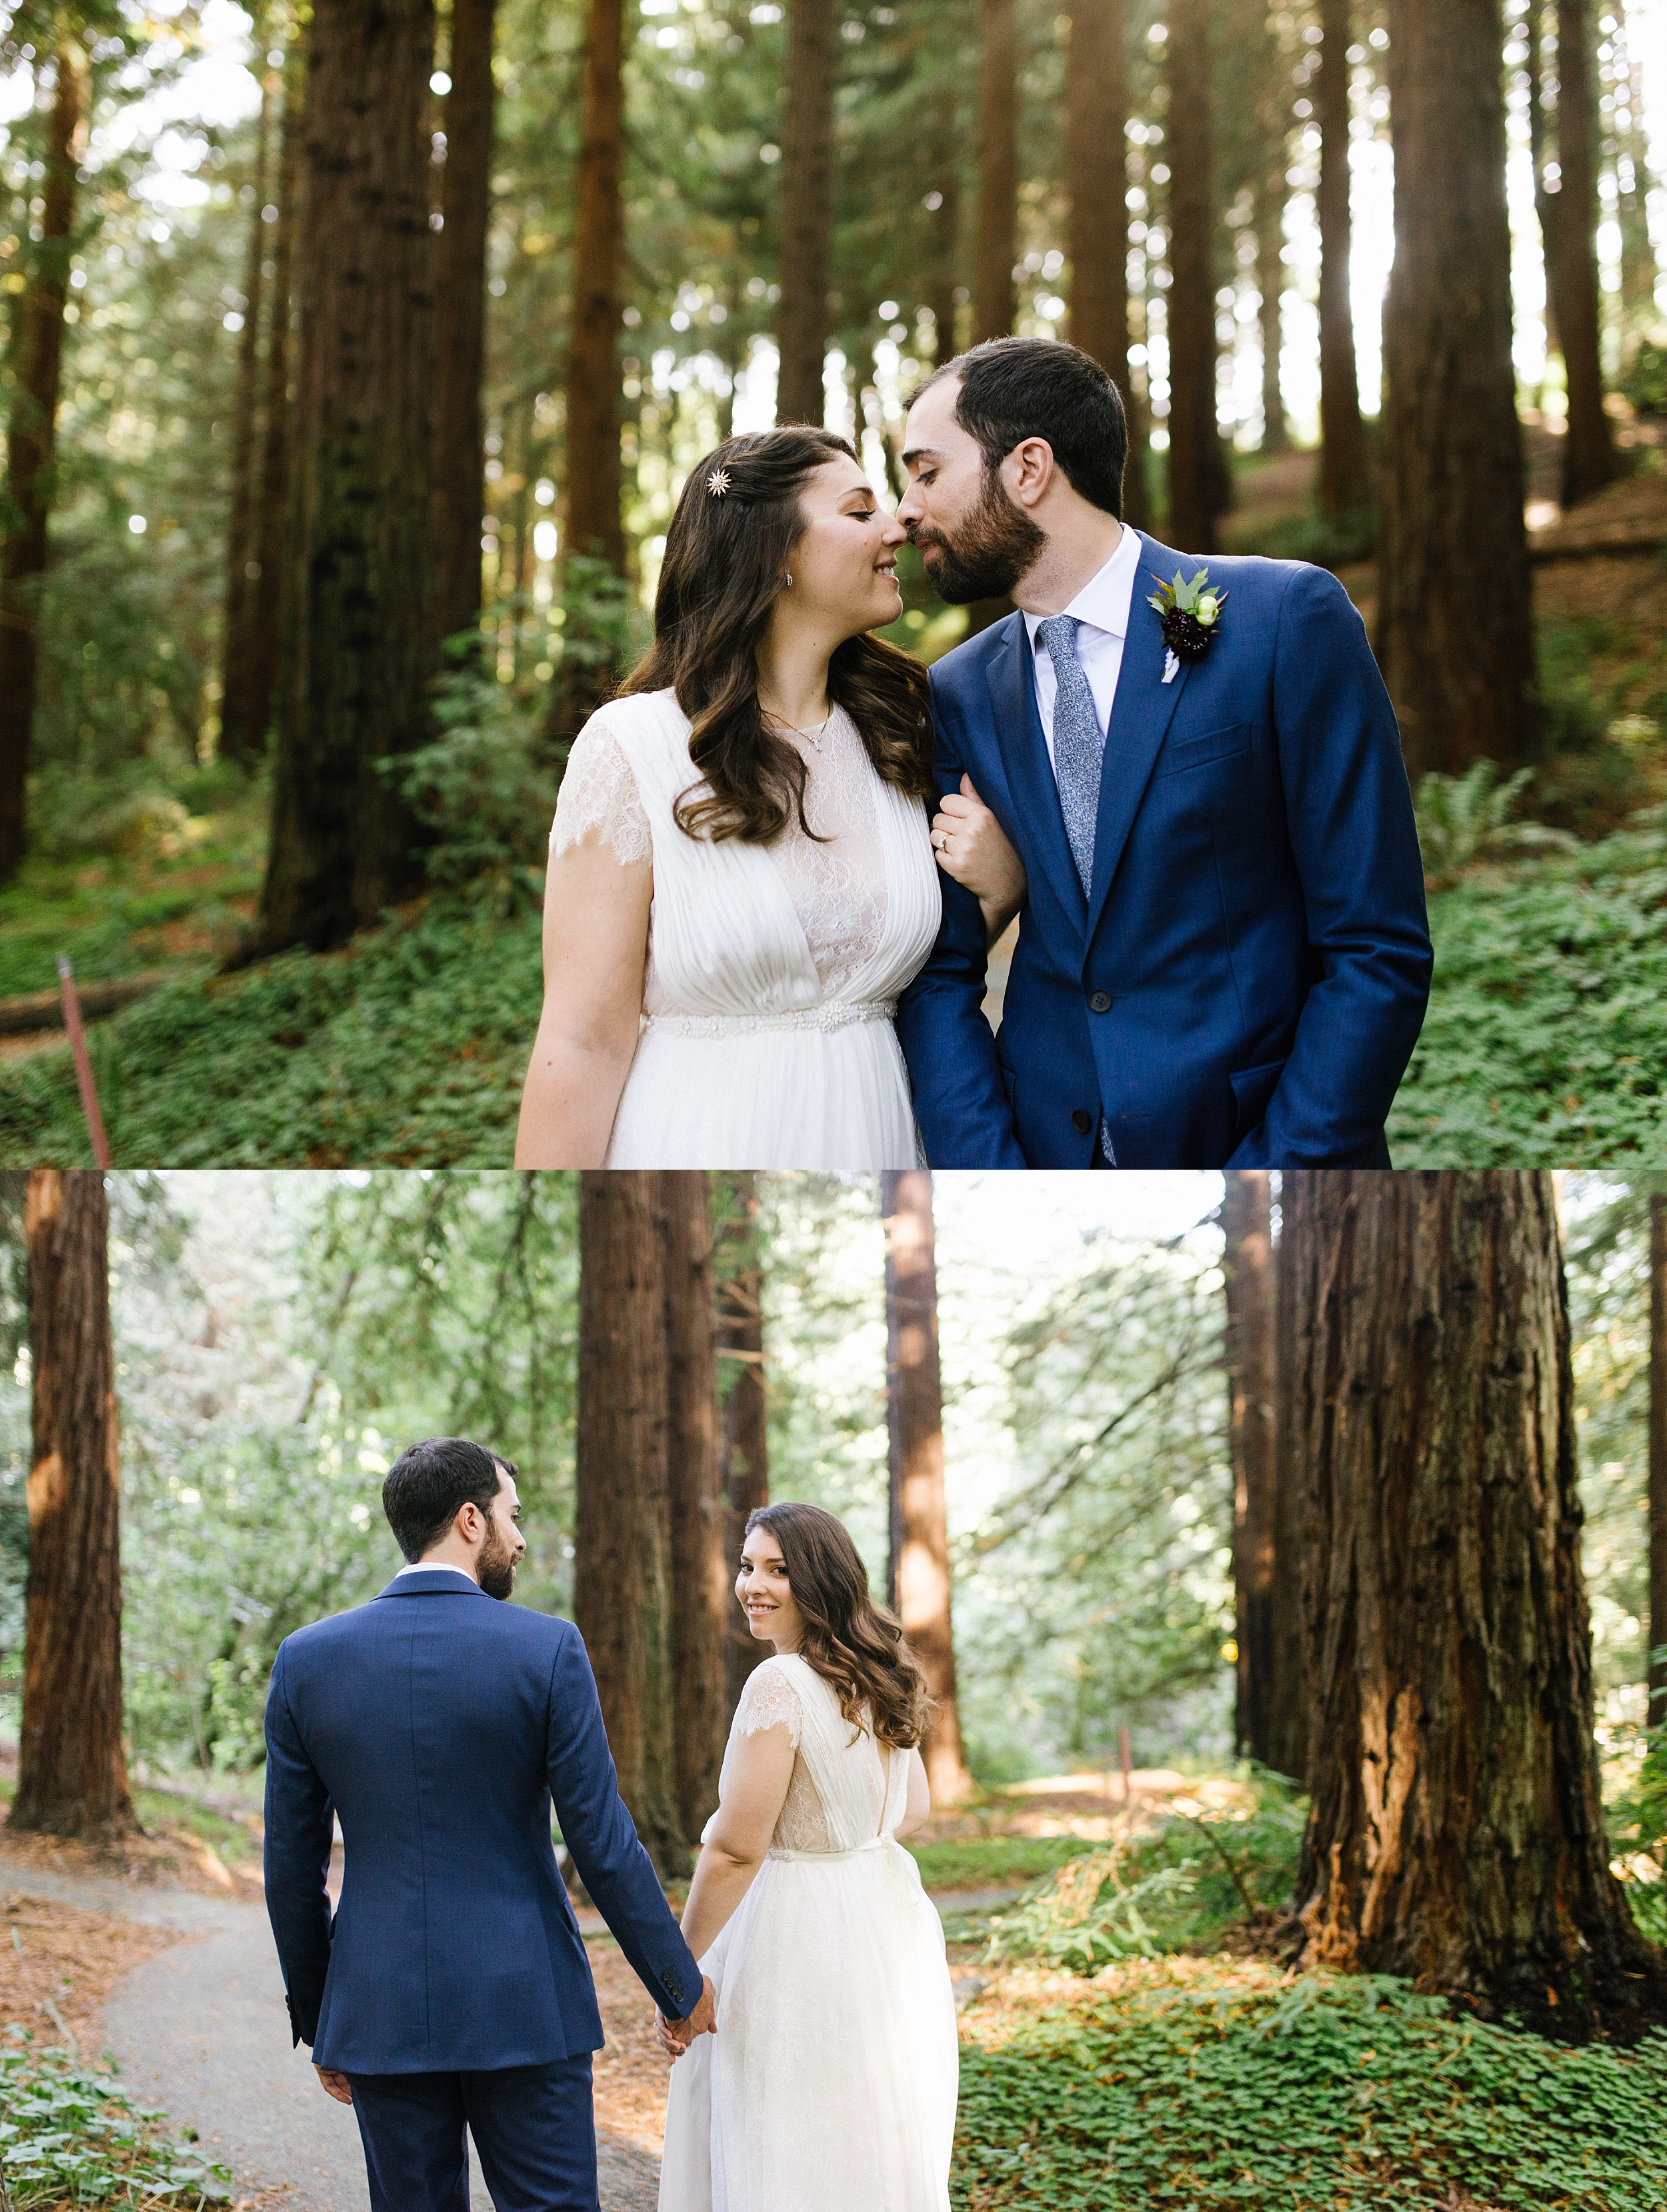 noahhannah_redwoods_botanical_wedding_berkeley_cdp_0016.jpg